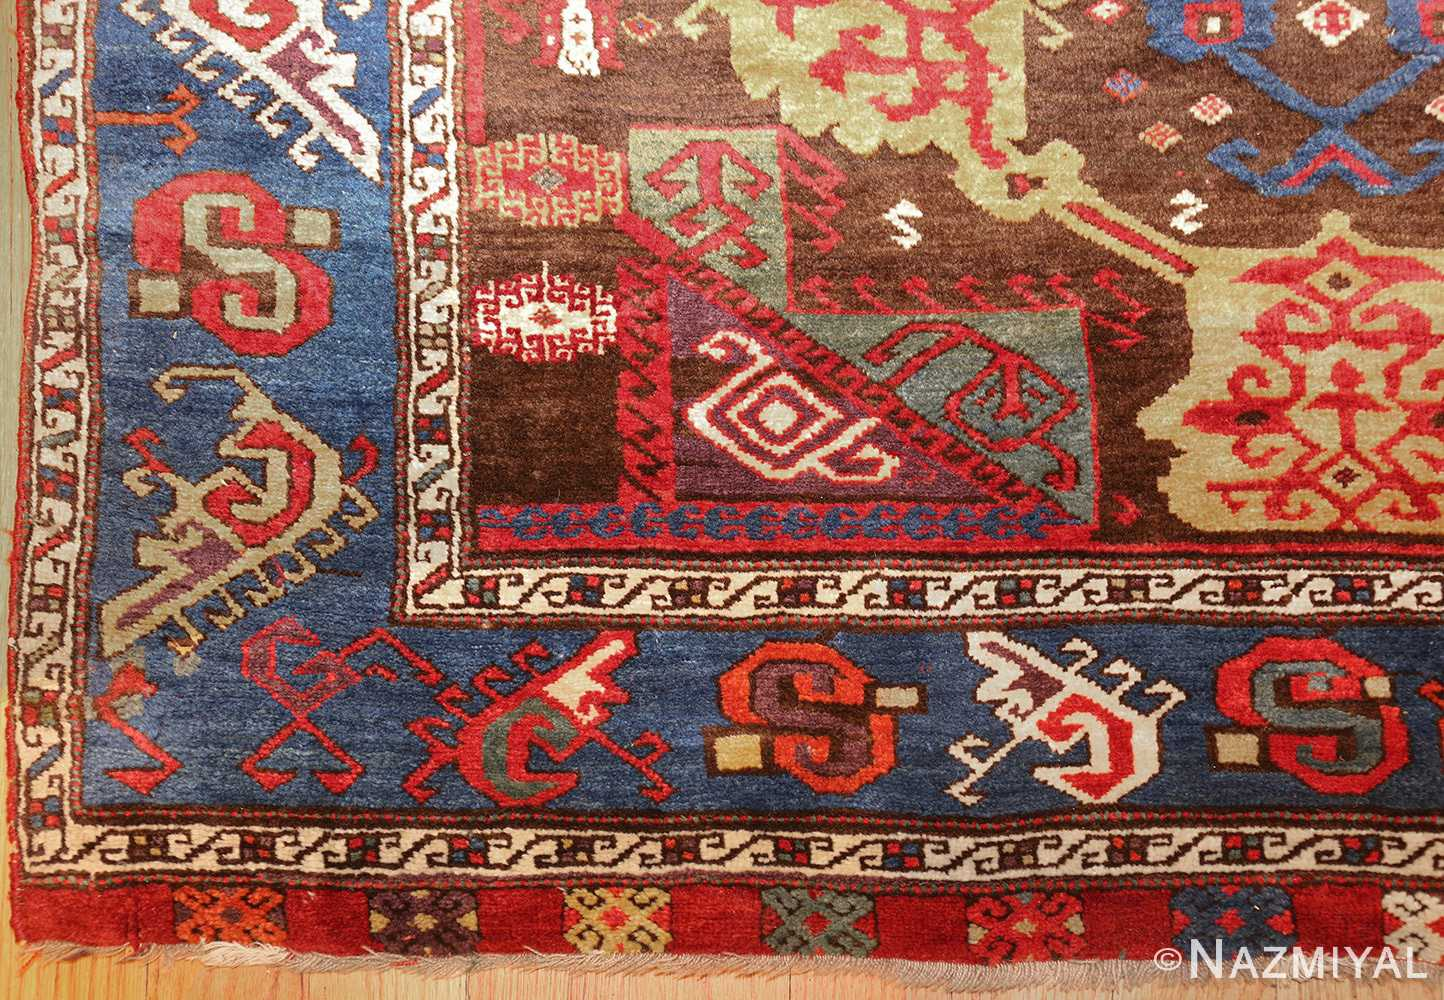 18th century turkish rug from james ballard 47373 corner Nazmiyal